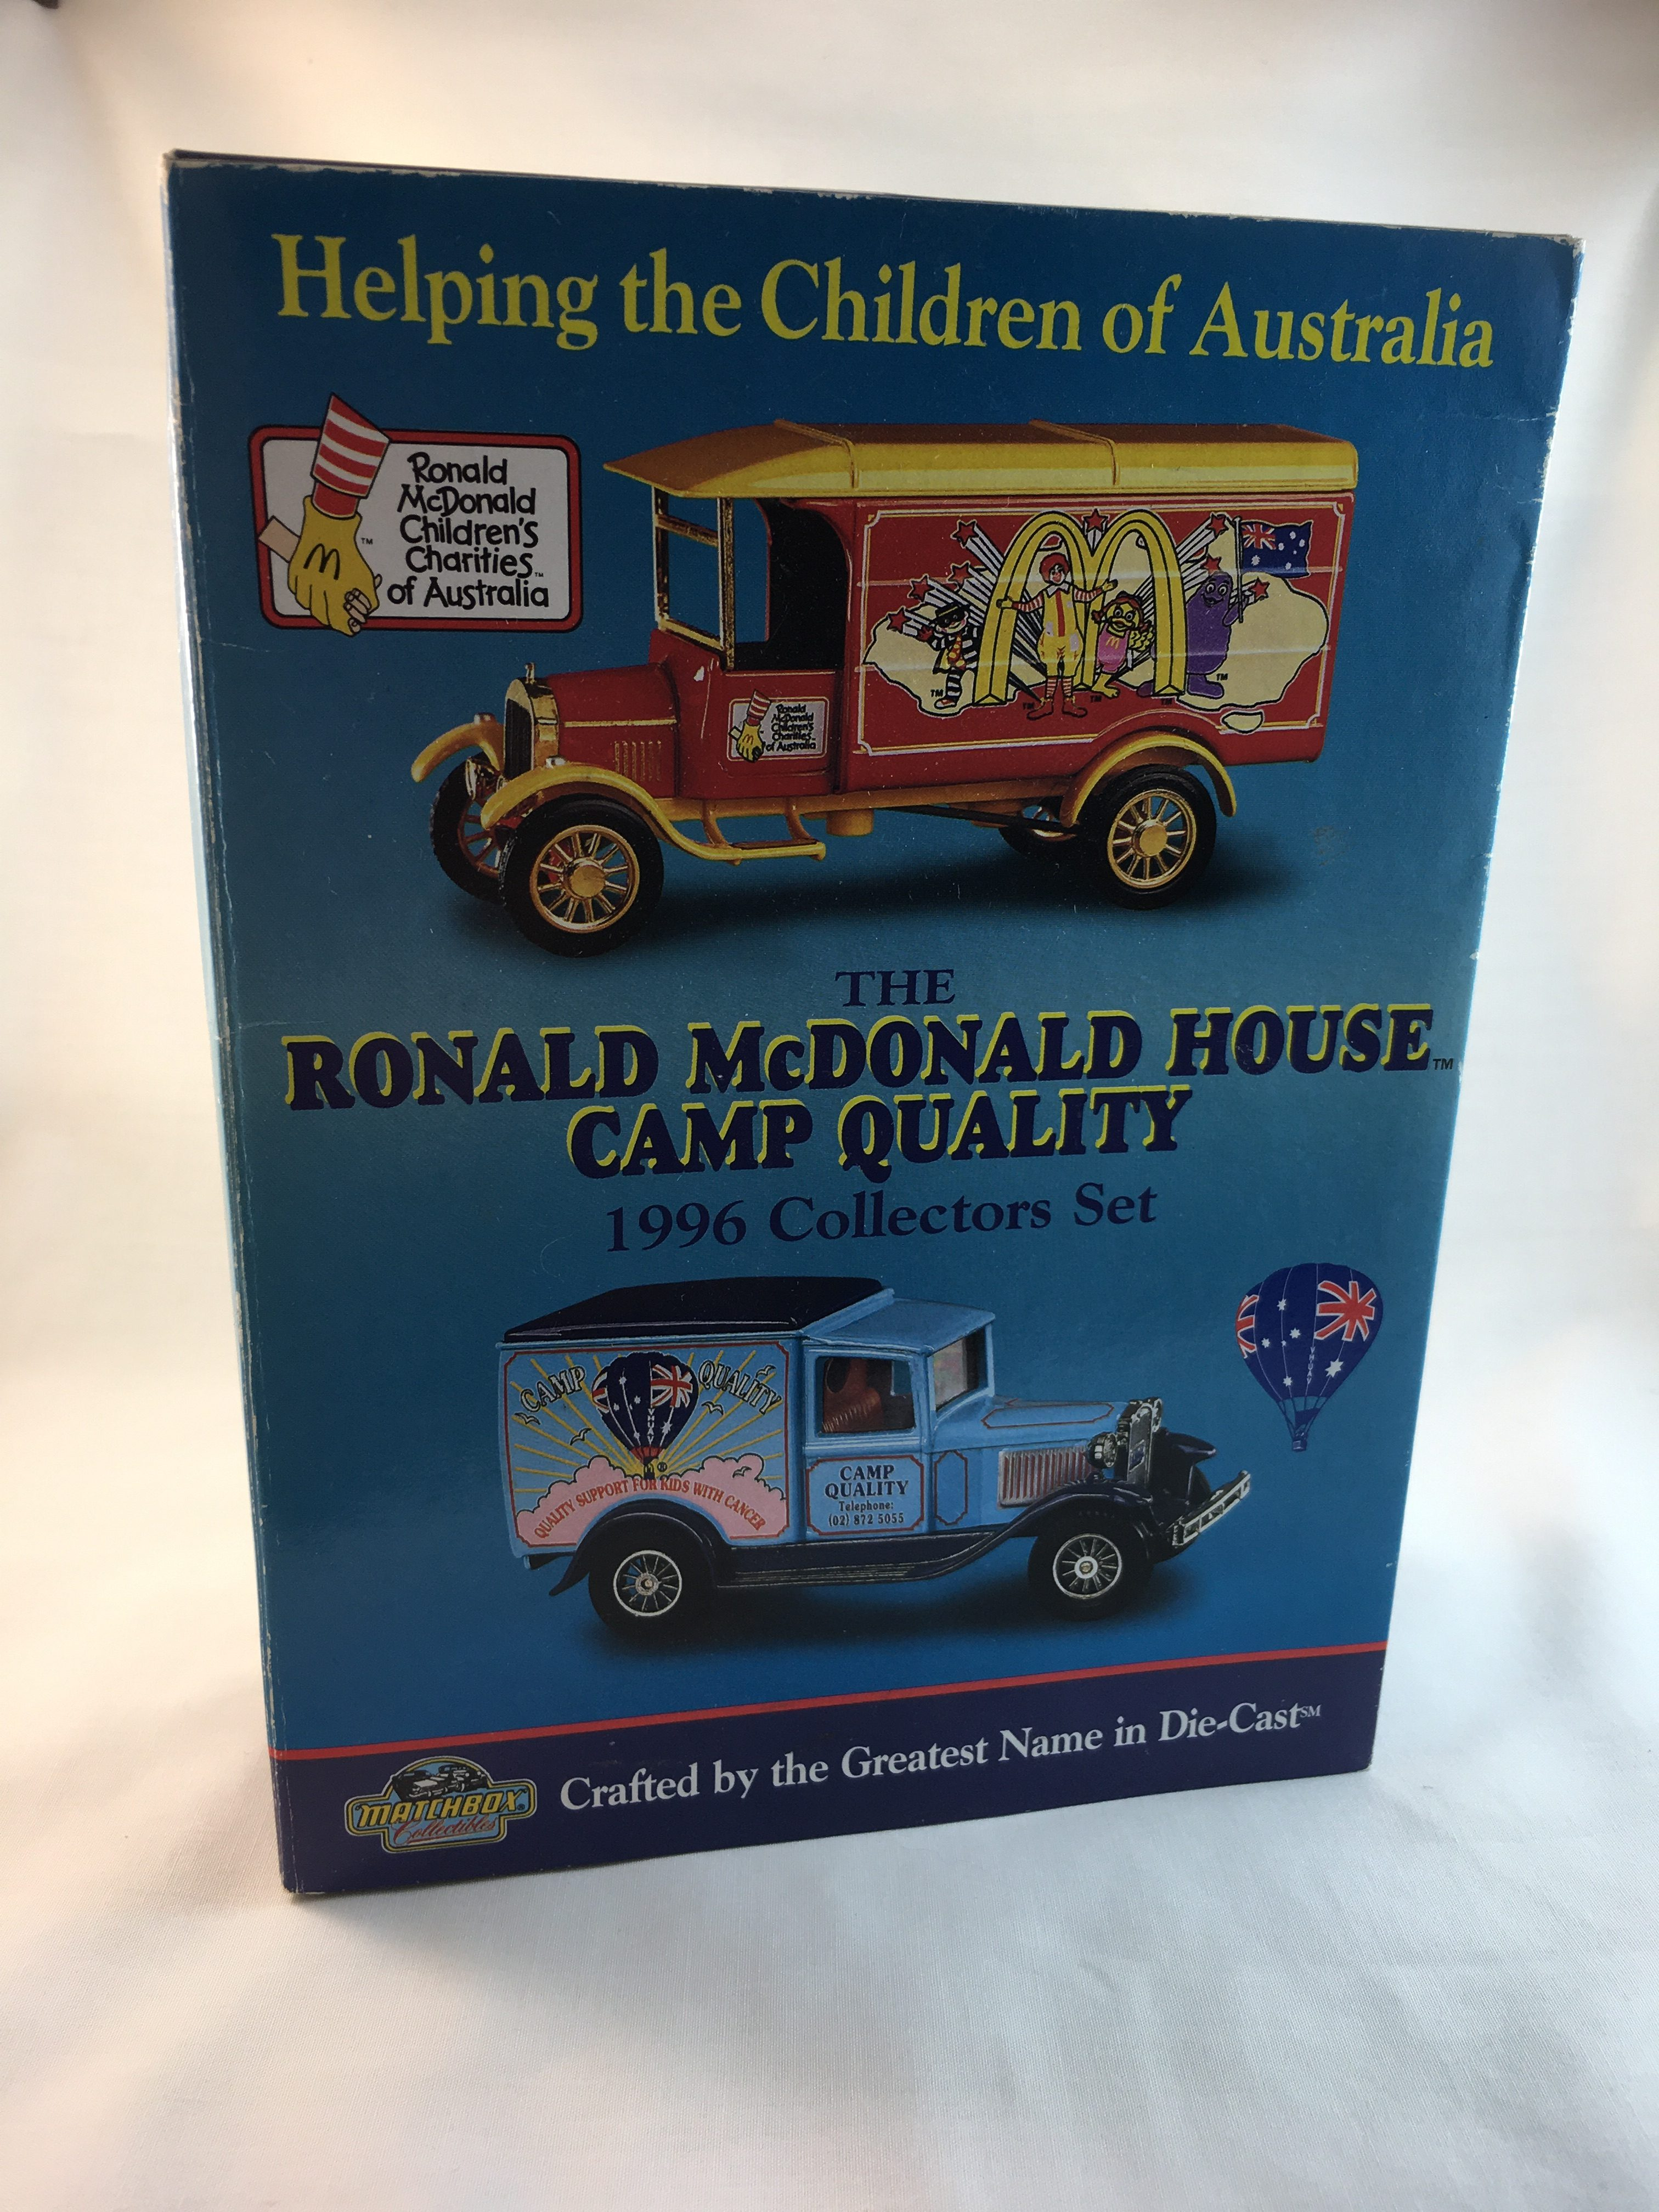 Ronald Mcdonald House Camp Quality 1996 Collectors Set